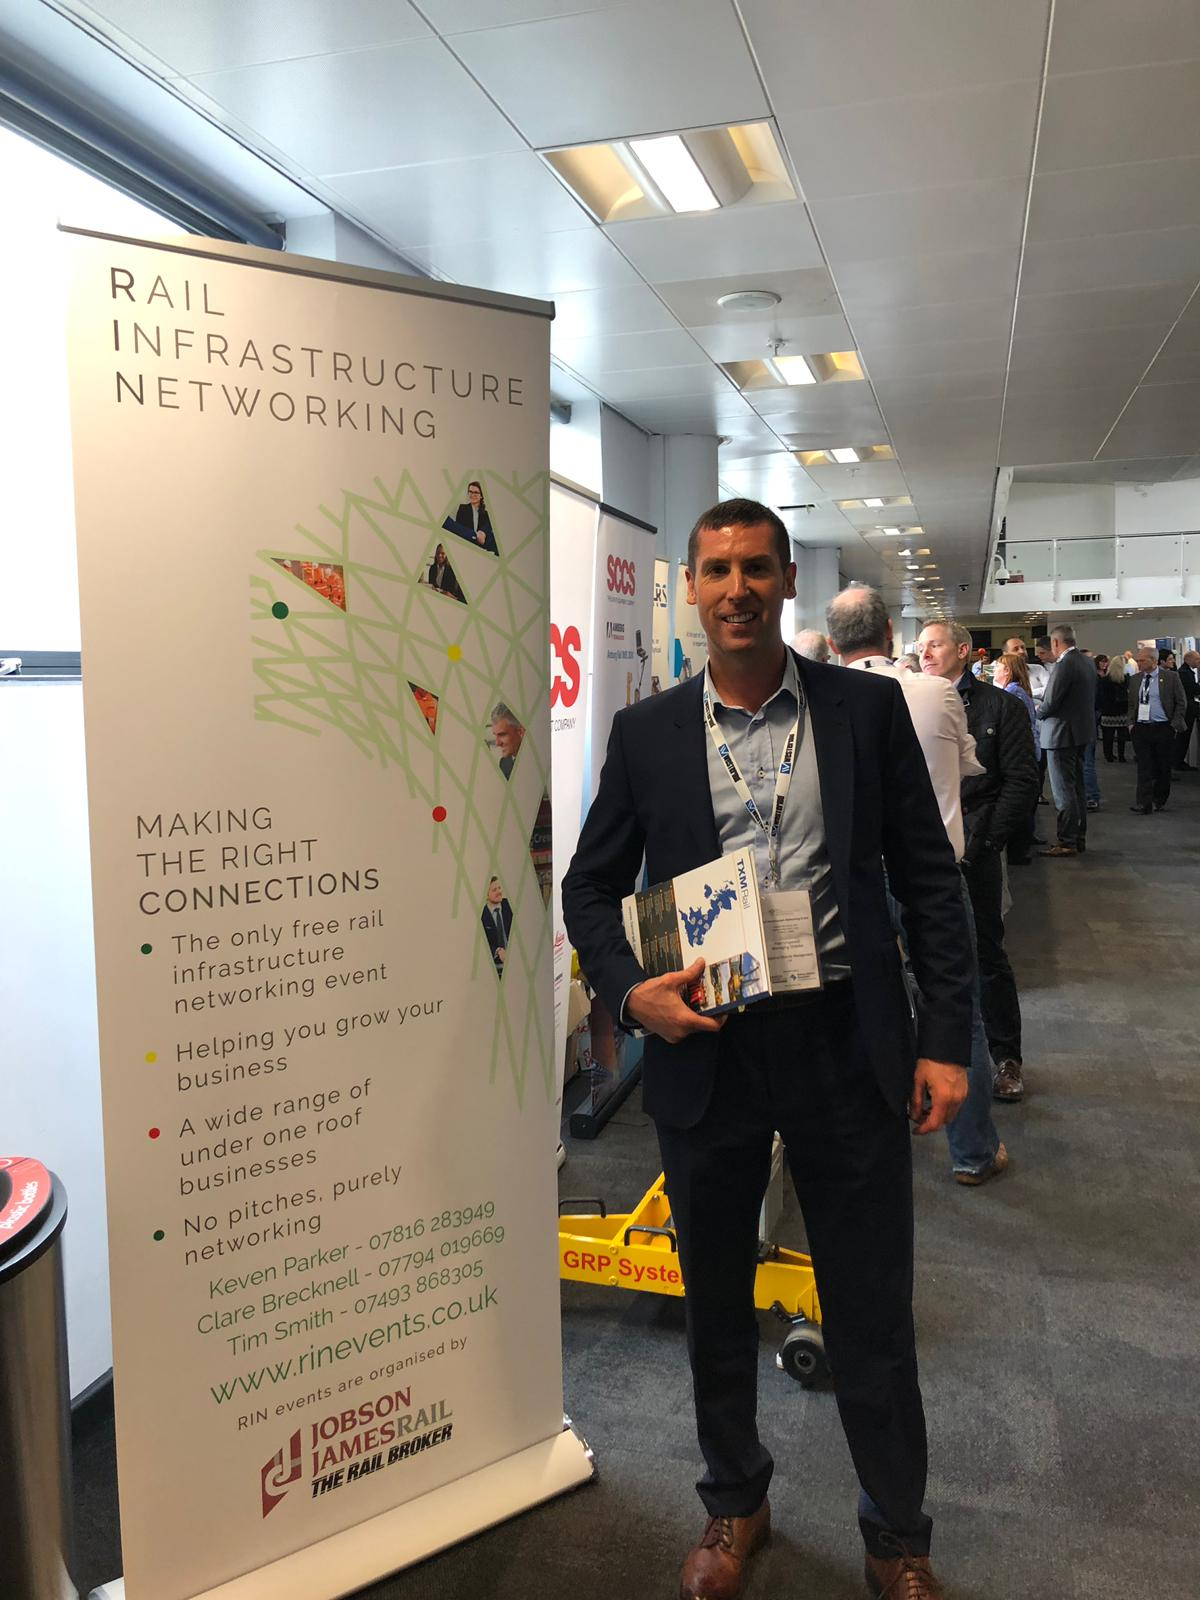 Alan Lingwood at the Rail Infrastructure Networking event